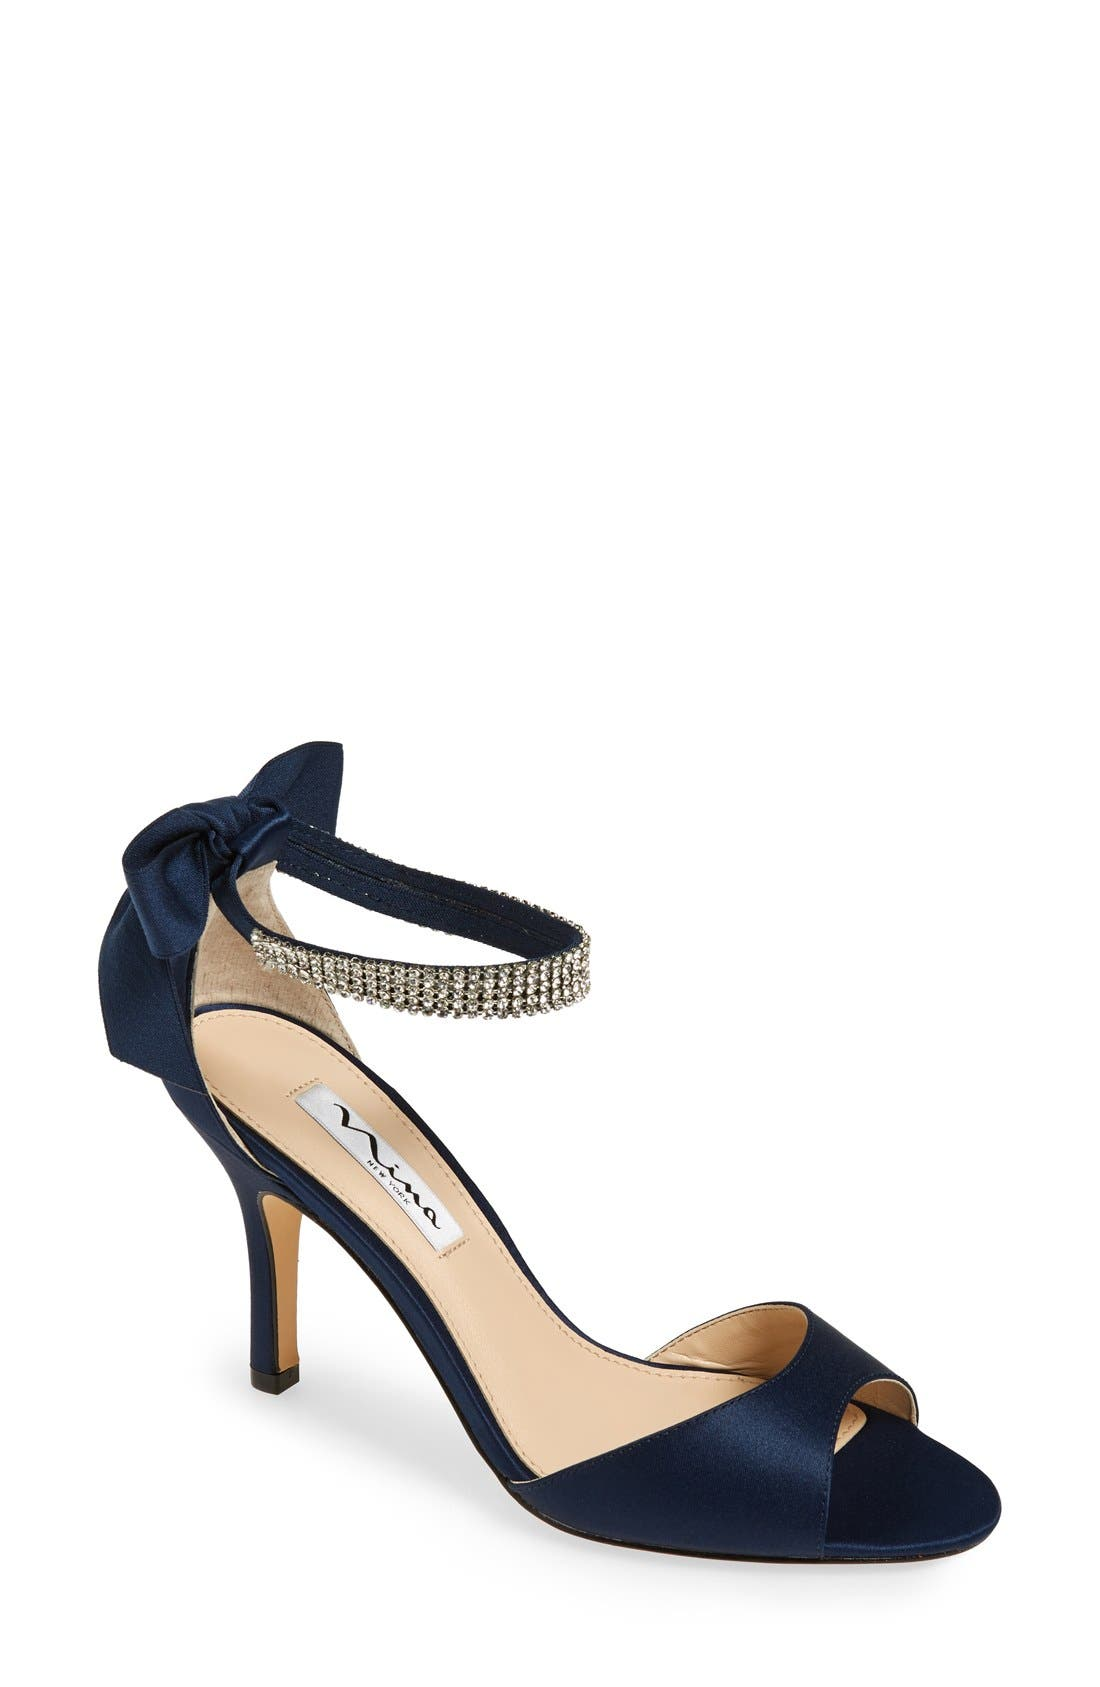 Main Image - Nina 'Vinnie' Crystal Embellished Ankle Strap Sandal (Women)